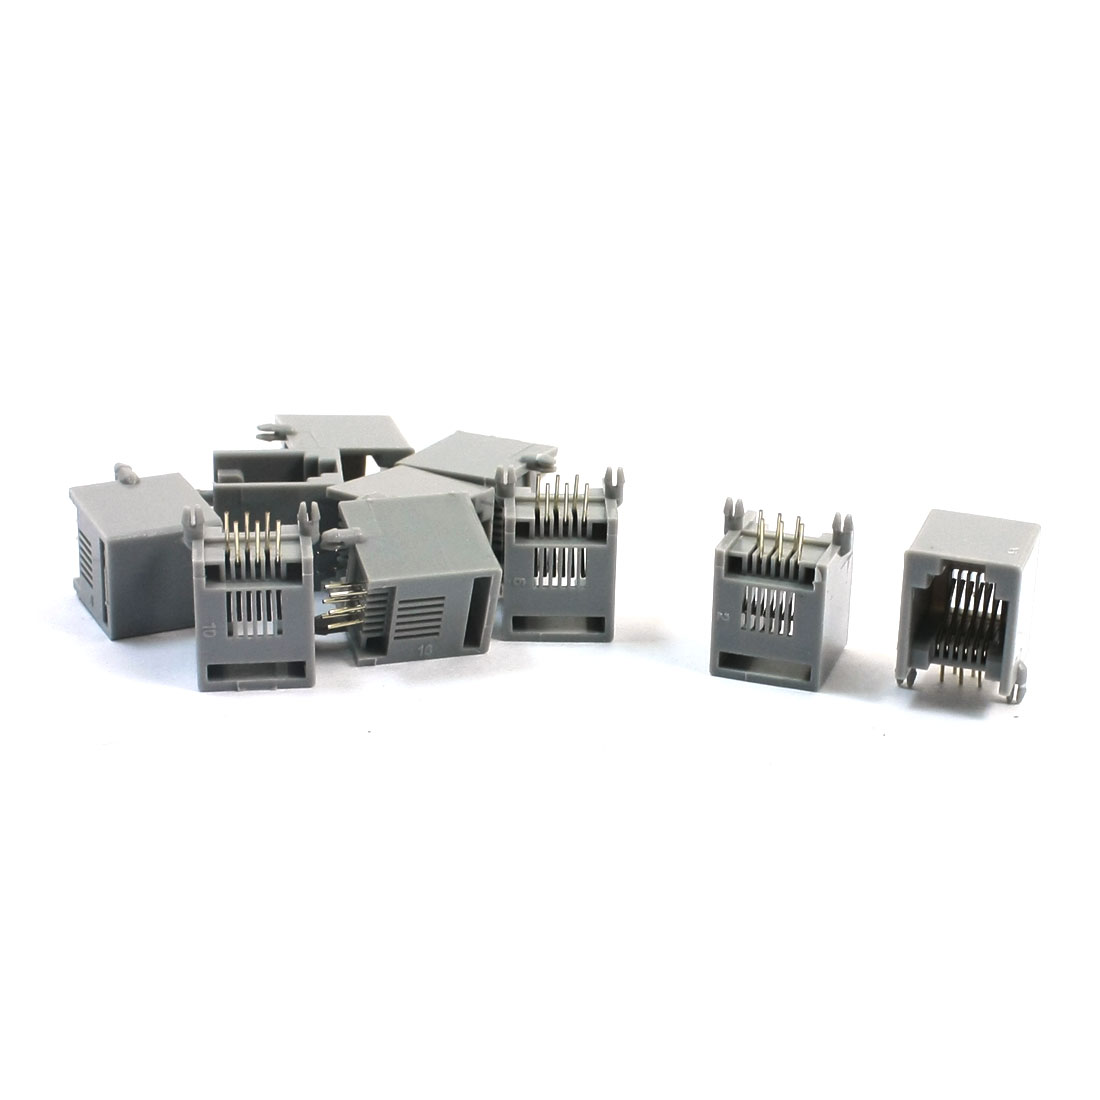 10 Pcs RJ11 6P6C 6Pin Male Modular Unshielded PCB Telephone Jack Connector Adapter Socket Gray